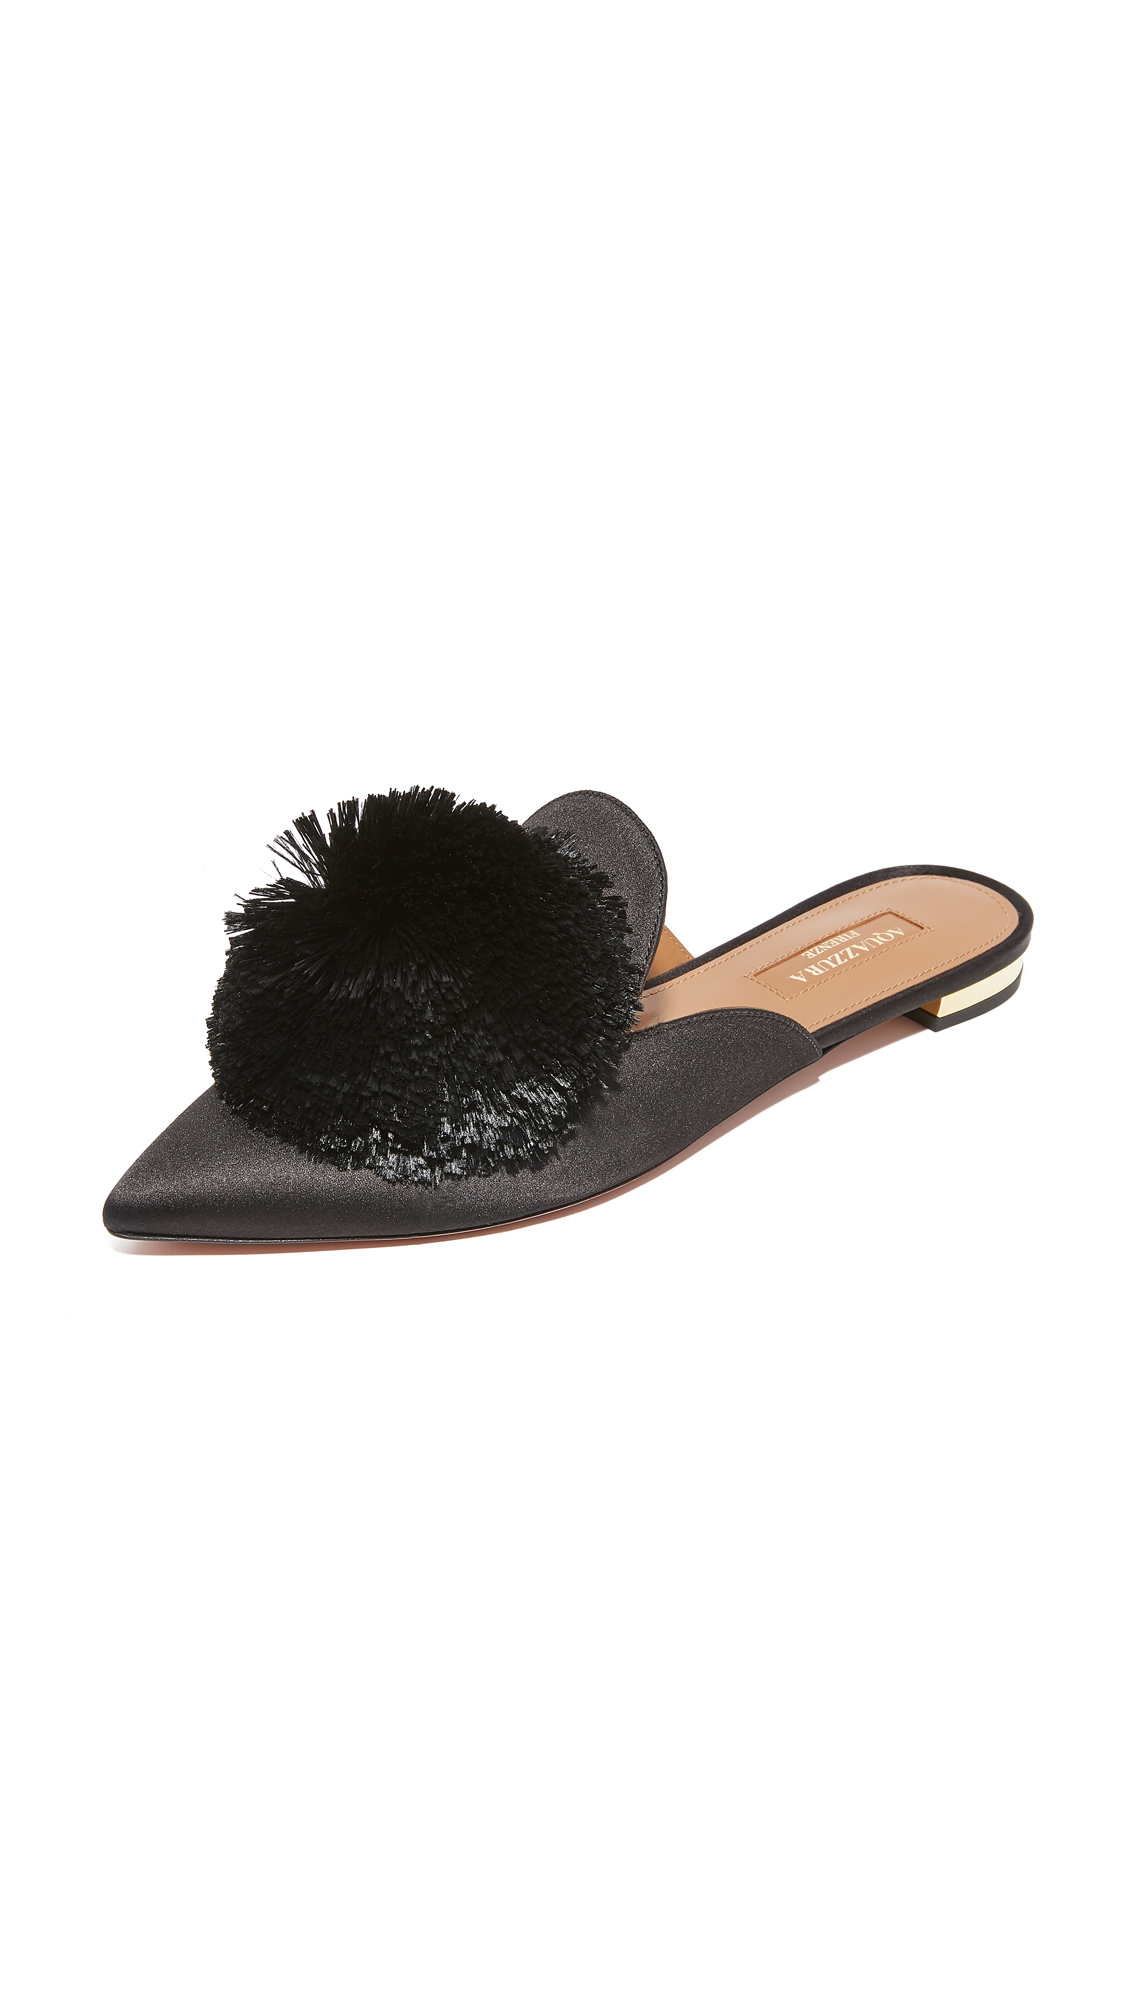 Aquazzura Powder Puff Flats - Black